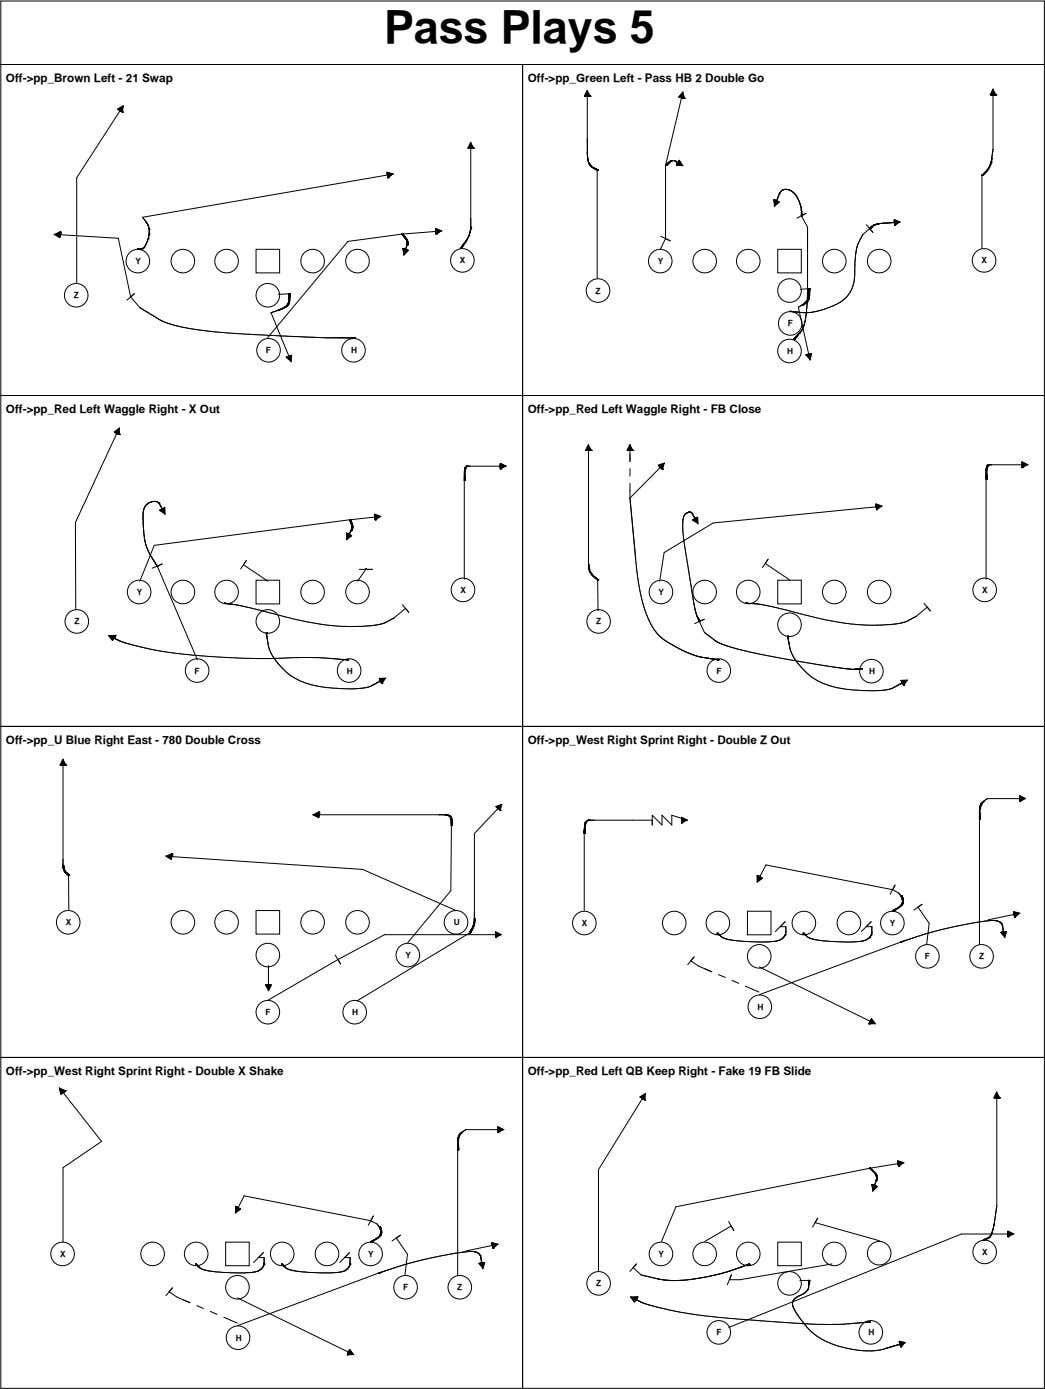 Pass Plays 5 Off->pp_Brown Left - 21 Swap Off->pp_Green Left - Pass HB 2 Double